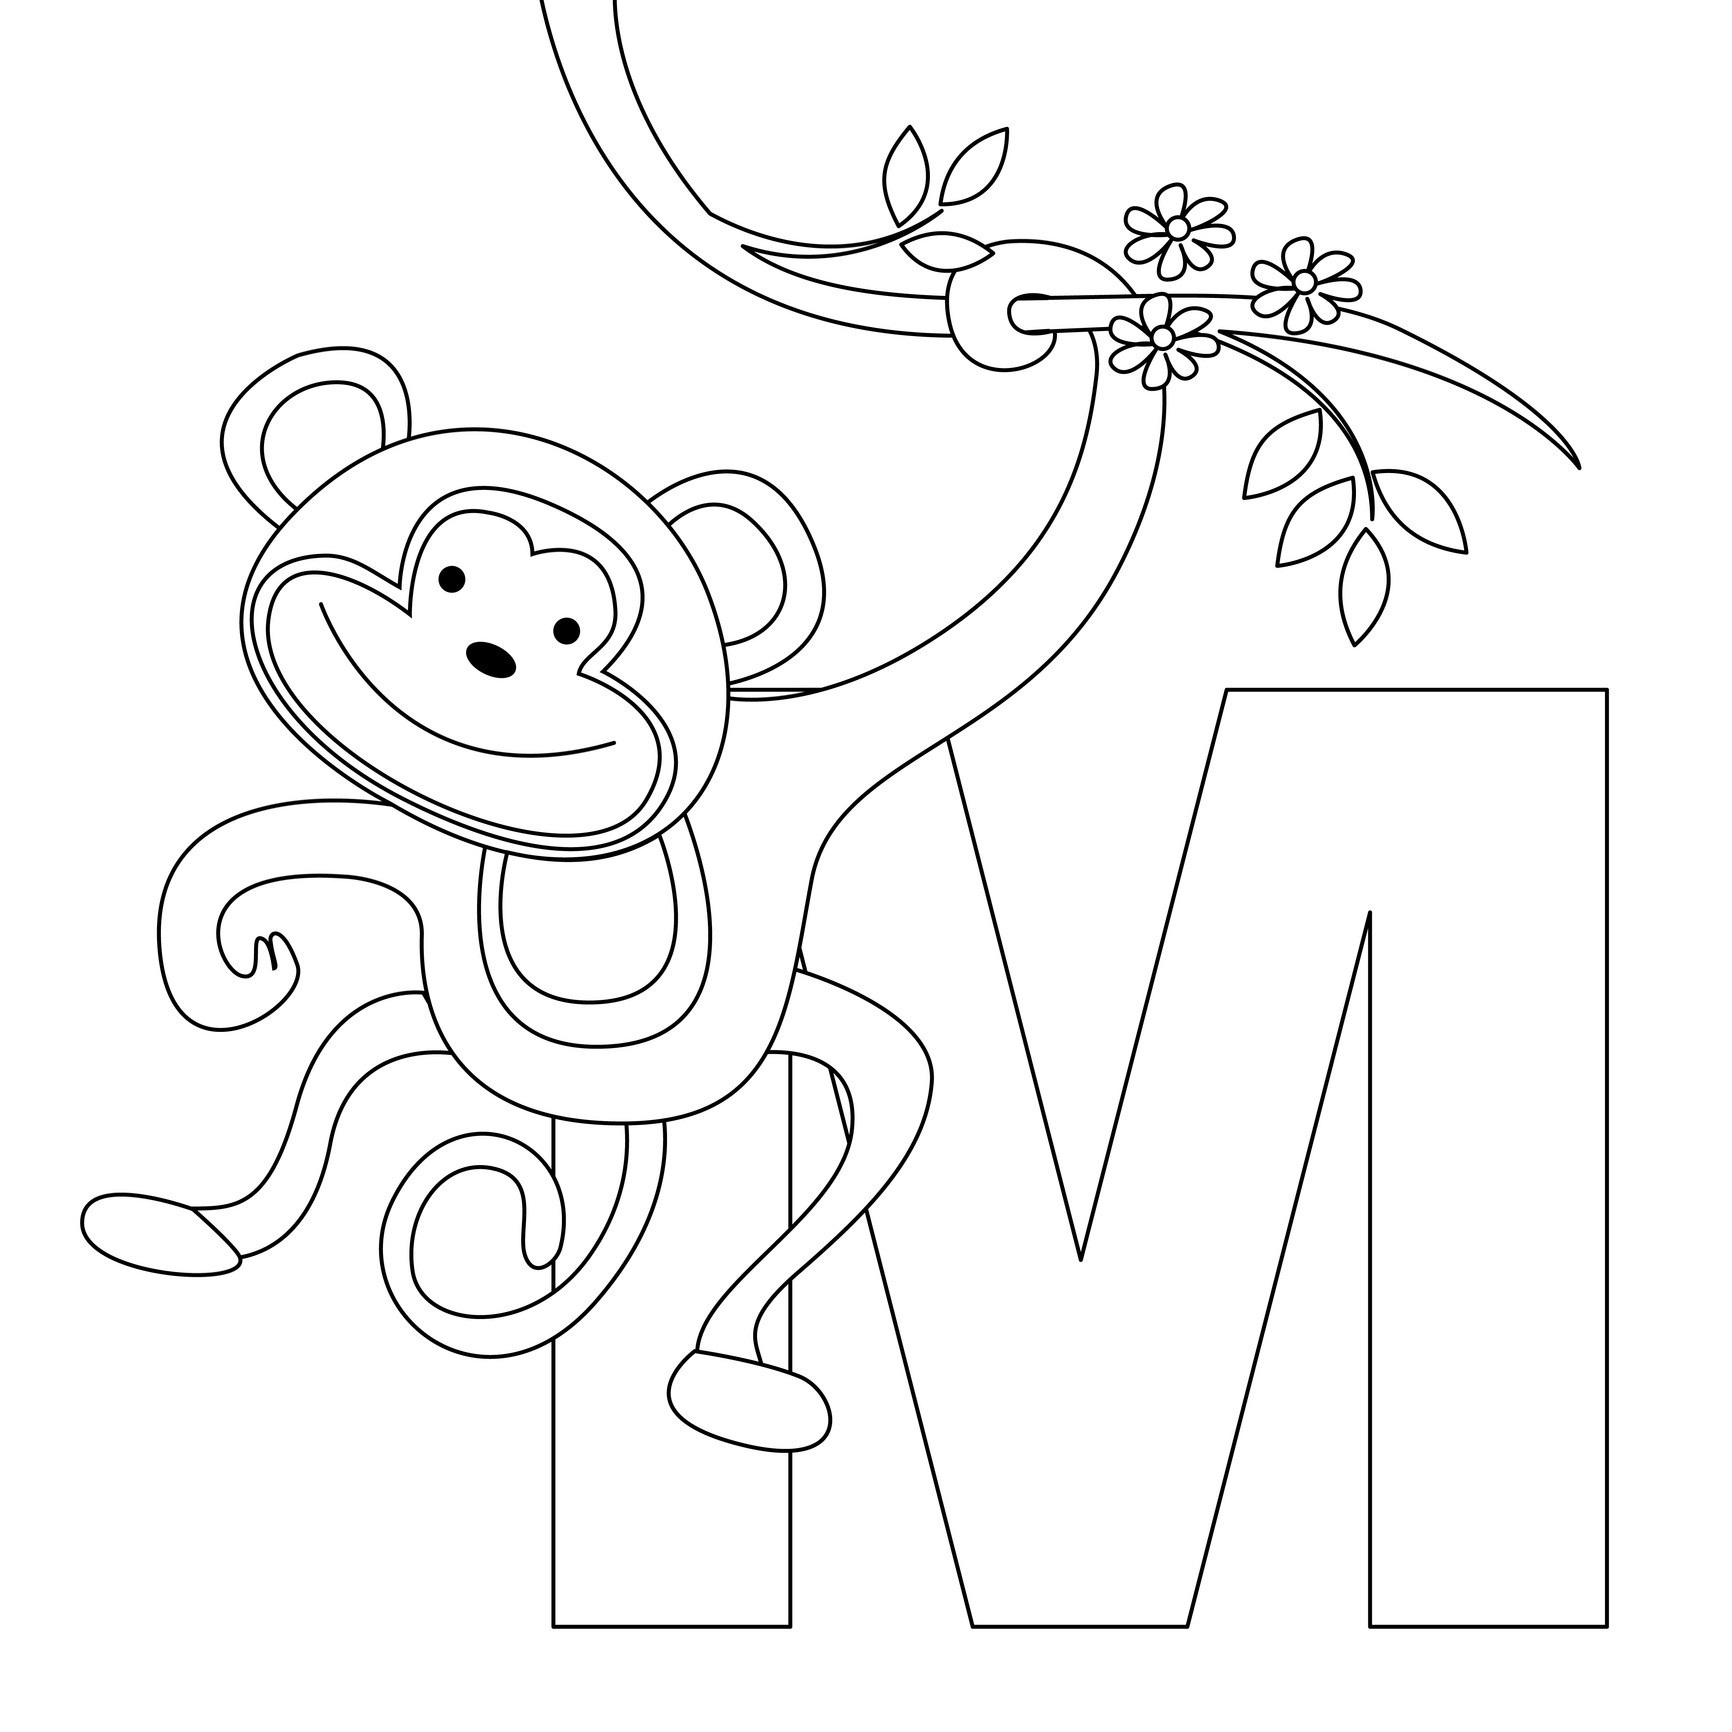 monkey coloring pages for preschoolers Collection-Coloring Pages of Cute Monkeys 4-i